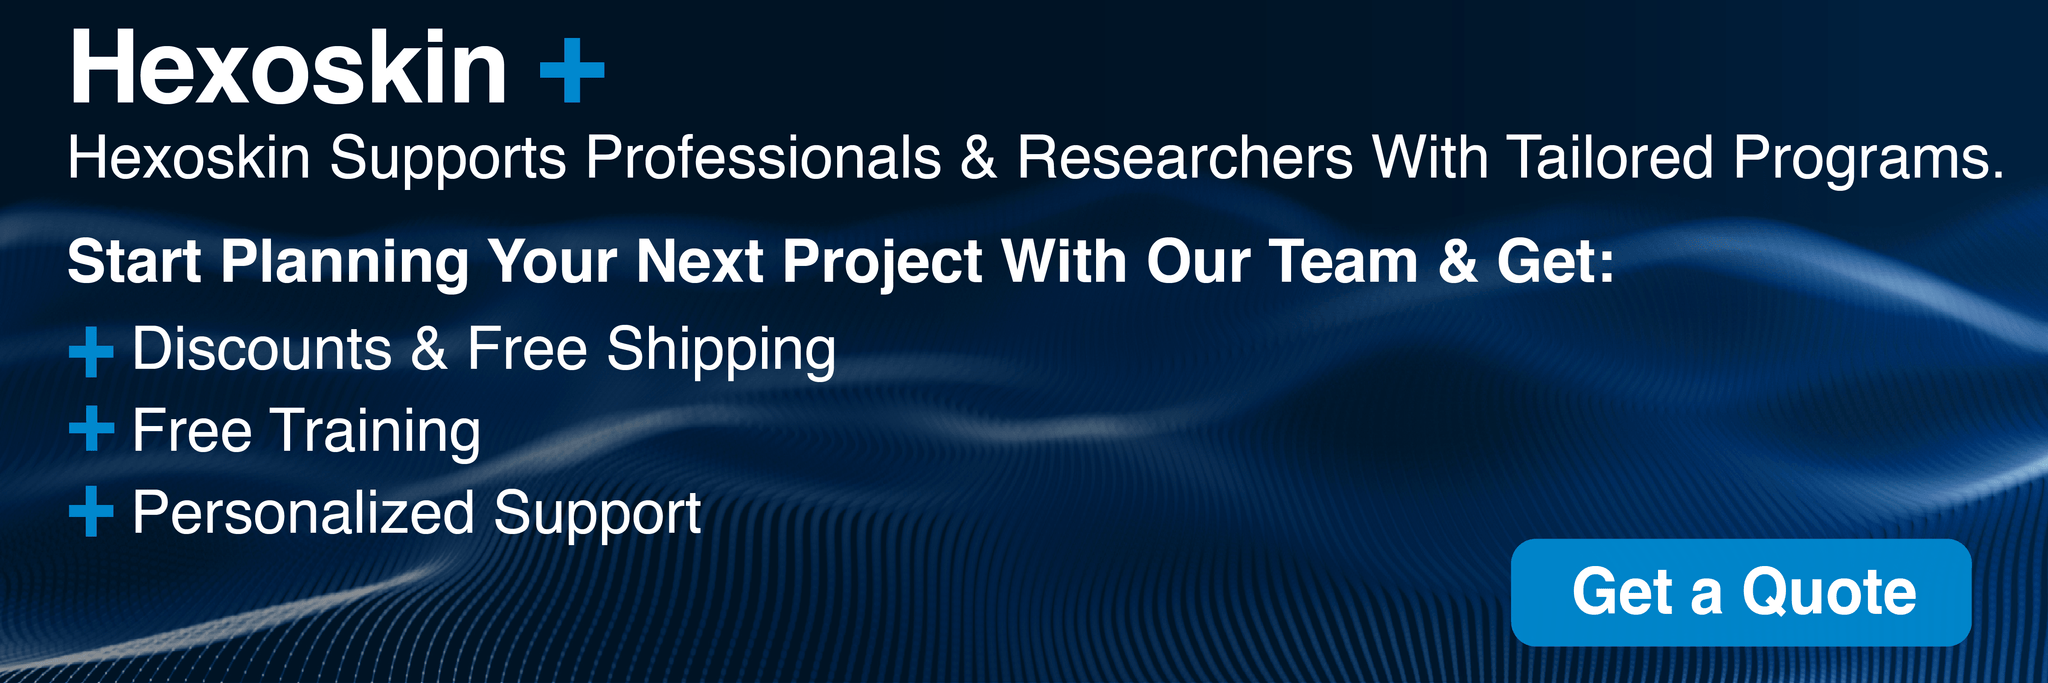 Hexoskin Plus Program For Professionals, Academic Researchers & Student